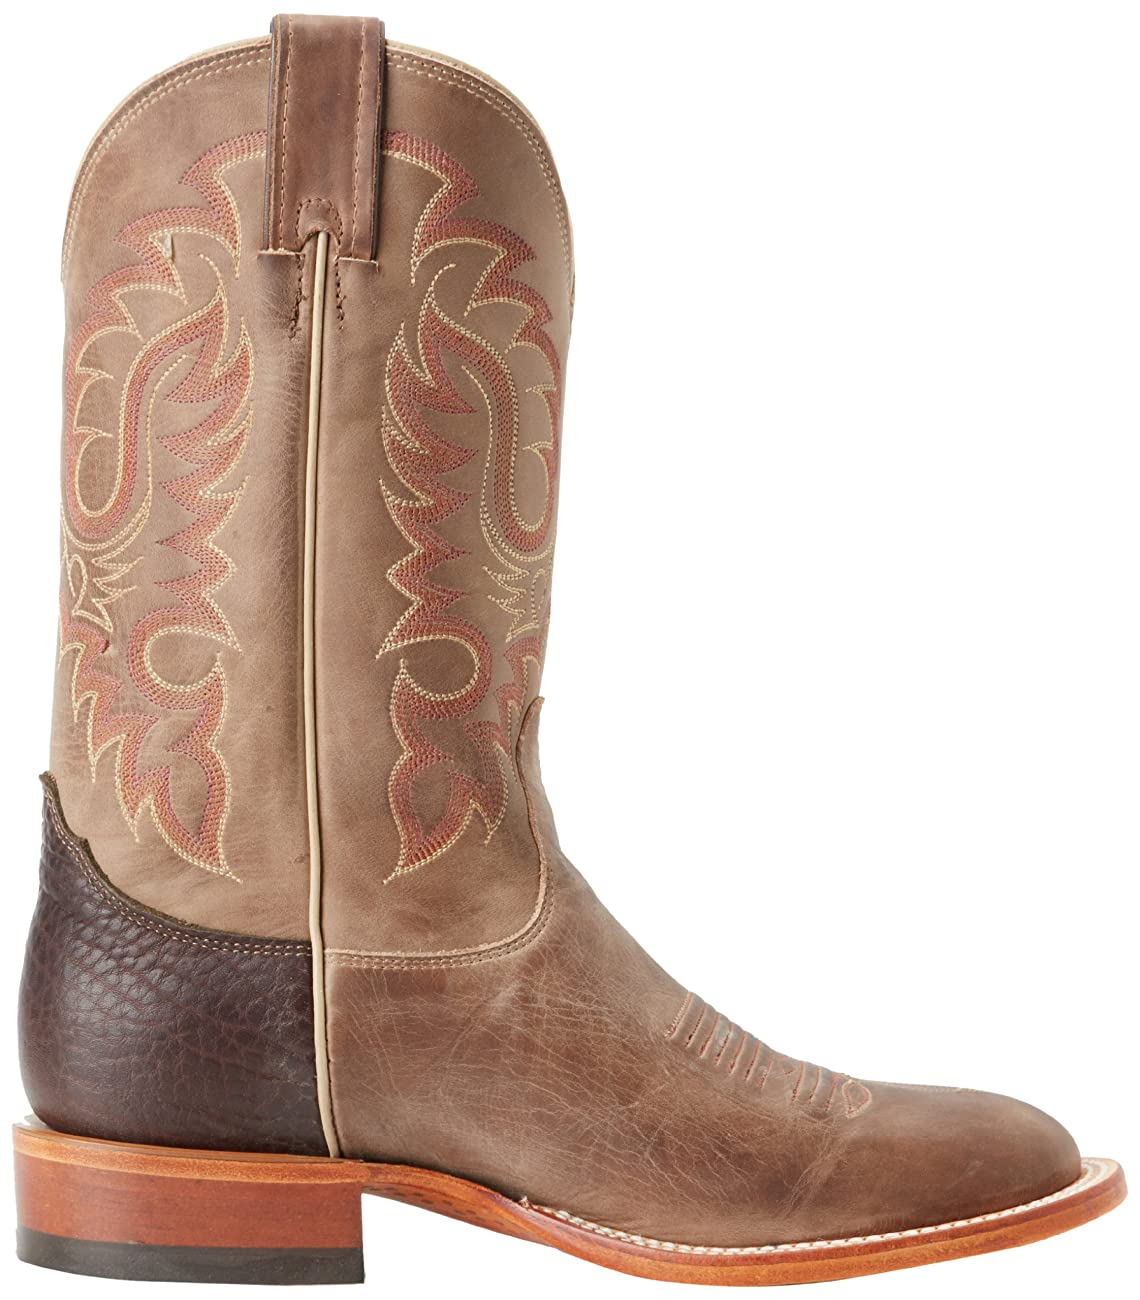 Nocona Boots Men's MD2732 11 Inch Boot 5